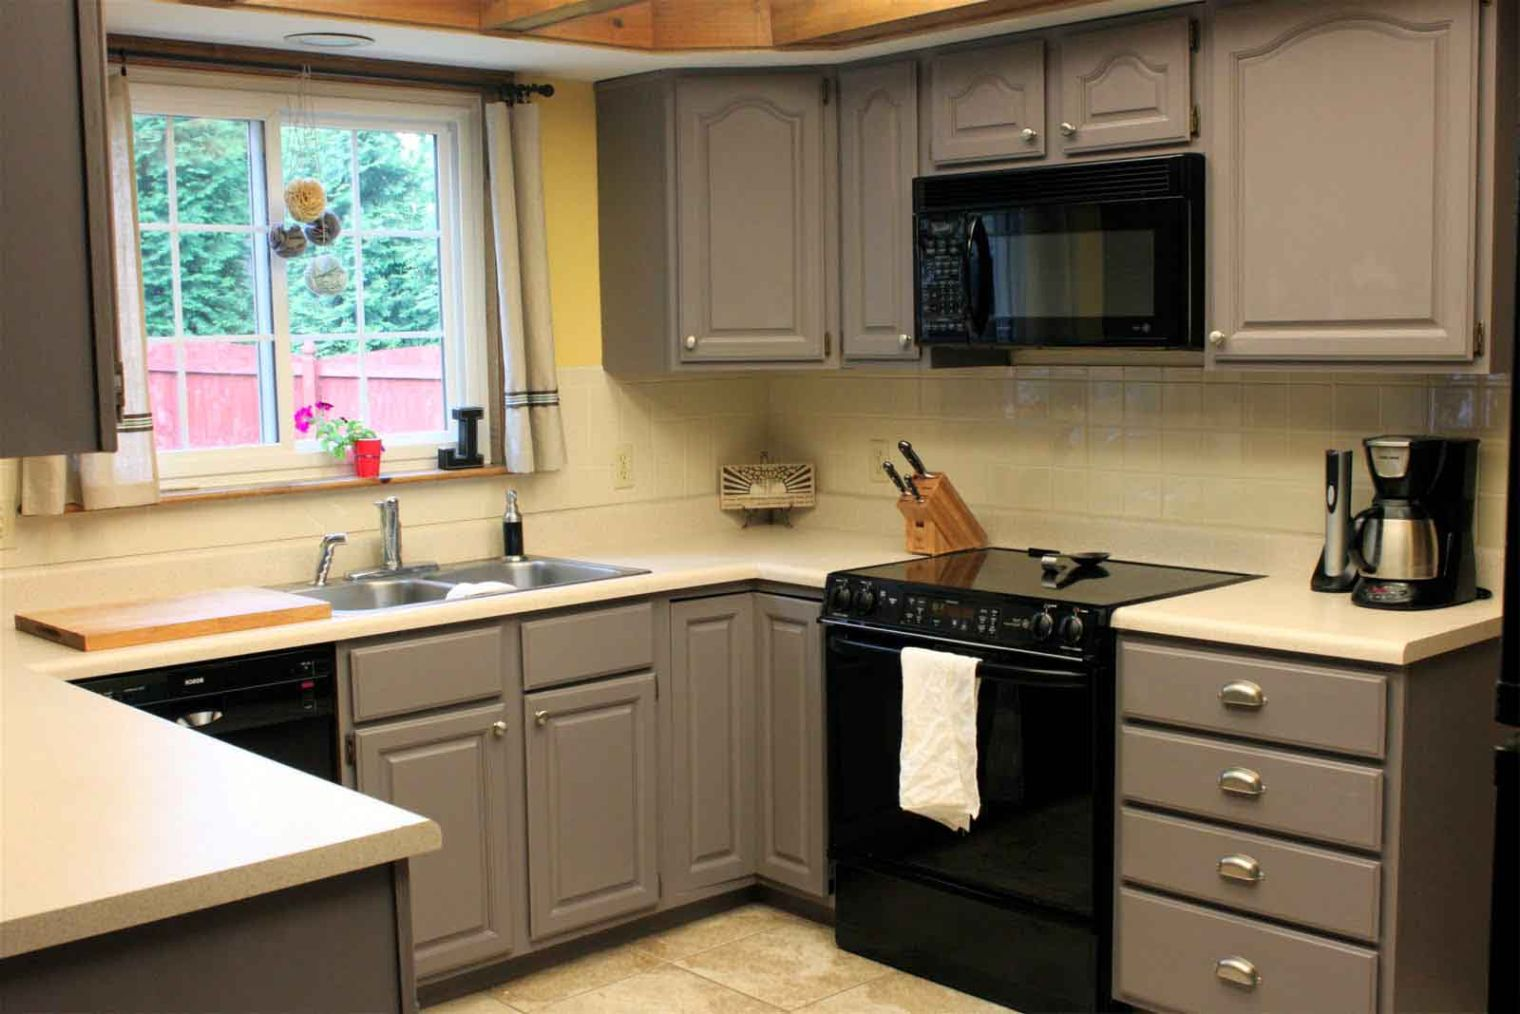 Grey painted kitchen cabinets in small kitchen space for Small upper kitchen cabinets